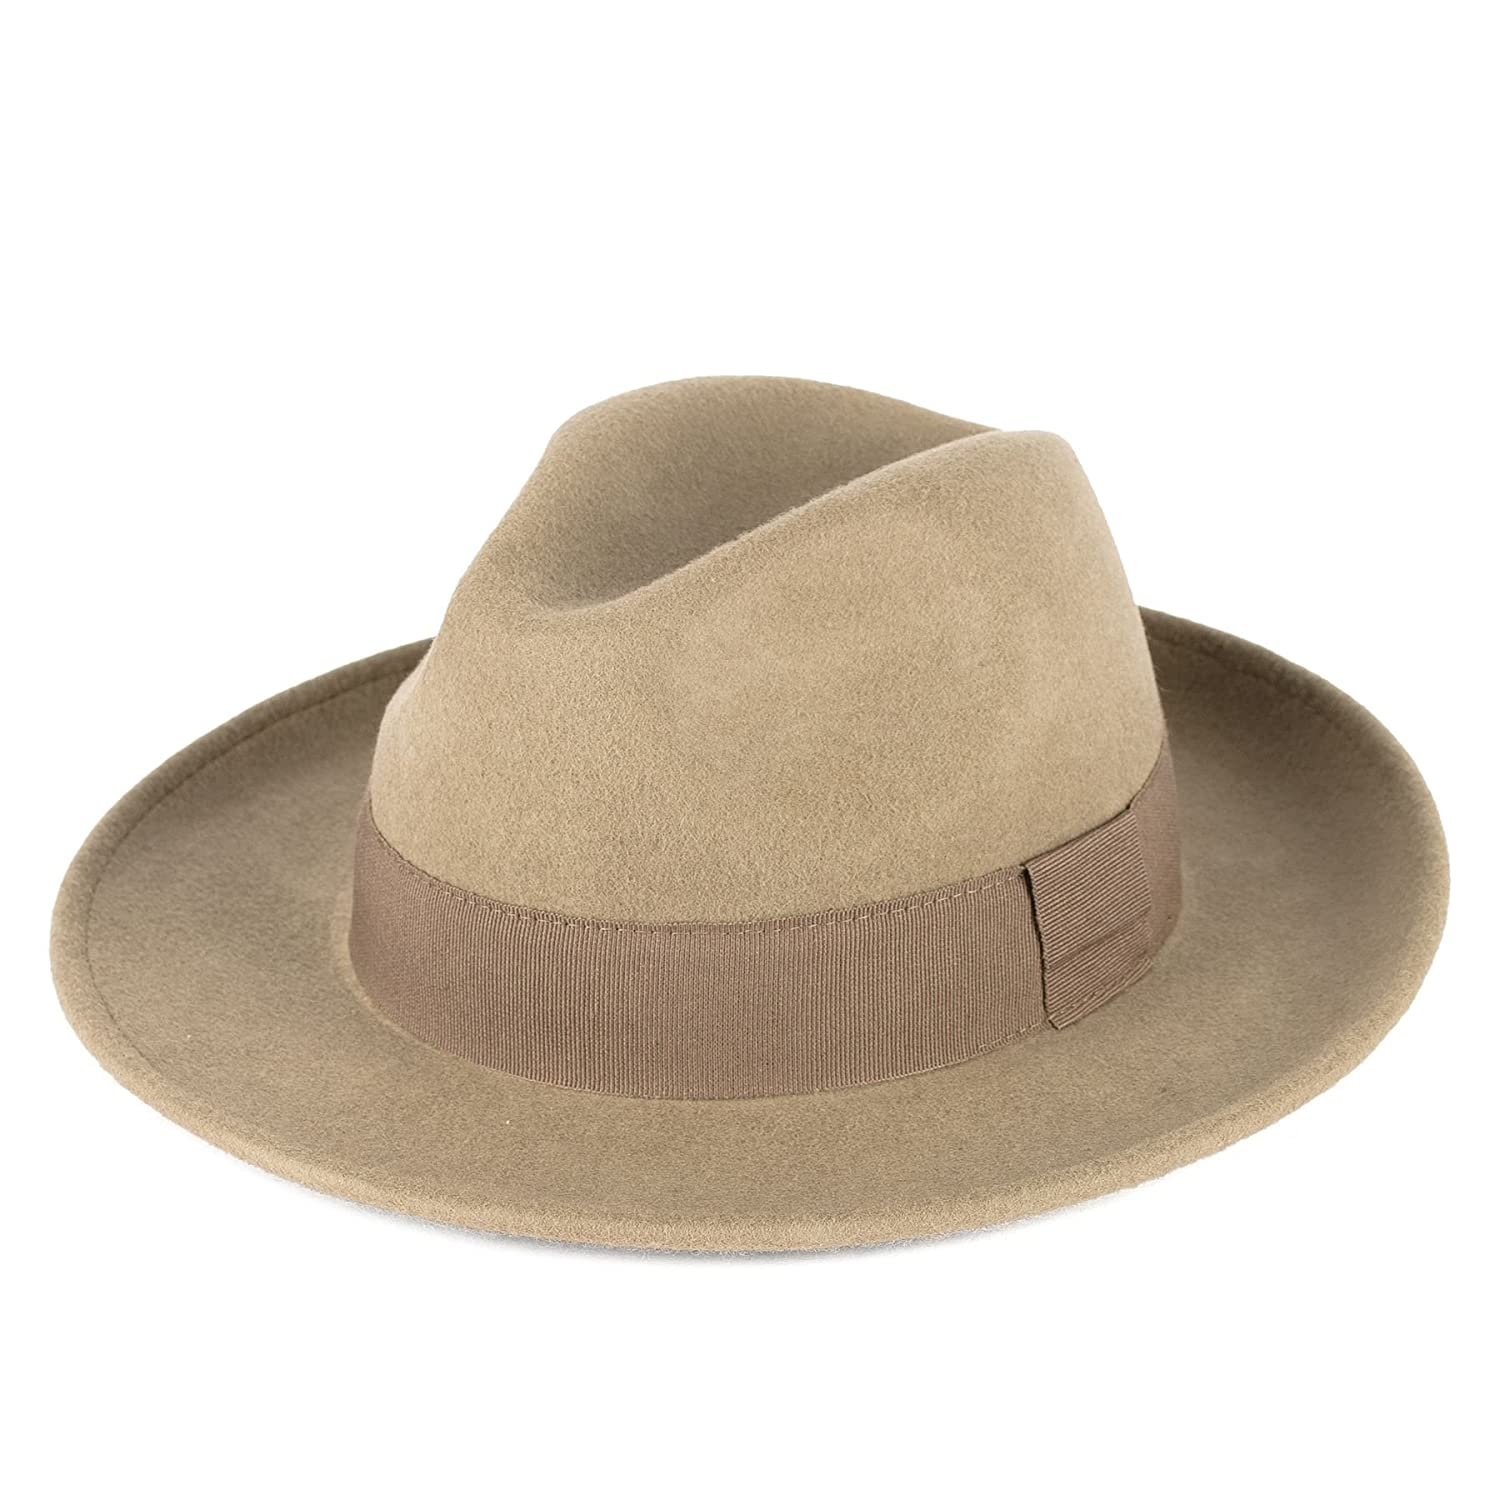 Amazon.com  Elegant Wool Fedora Hat Waterproof   Crushable Handmade in  Italy  Clothing a389d4e4a5c9